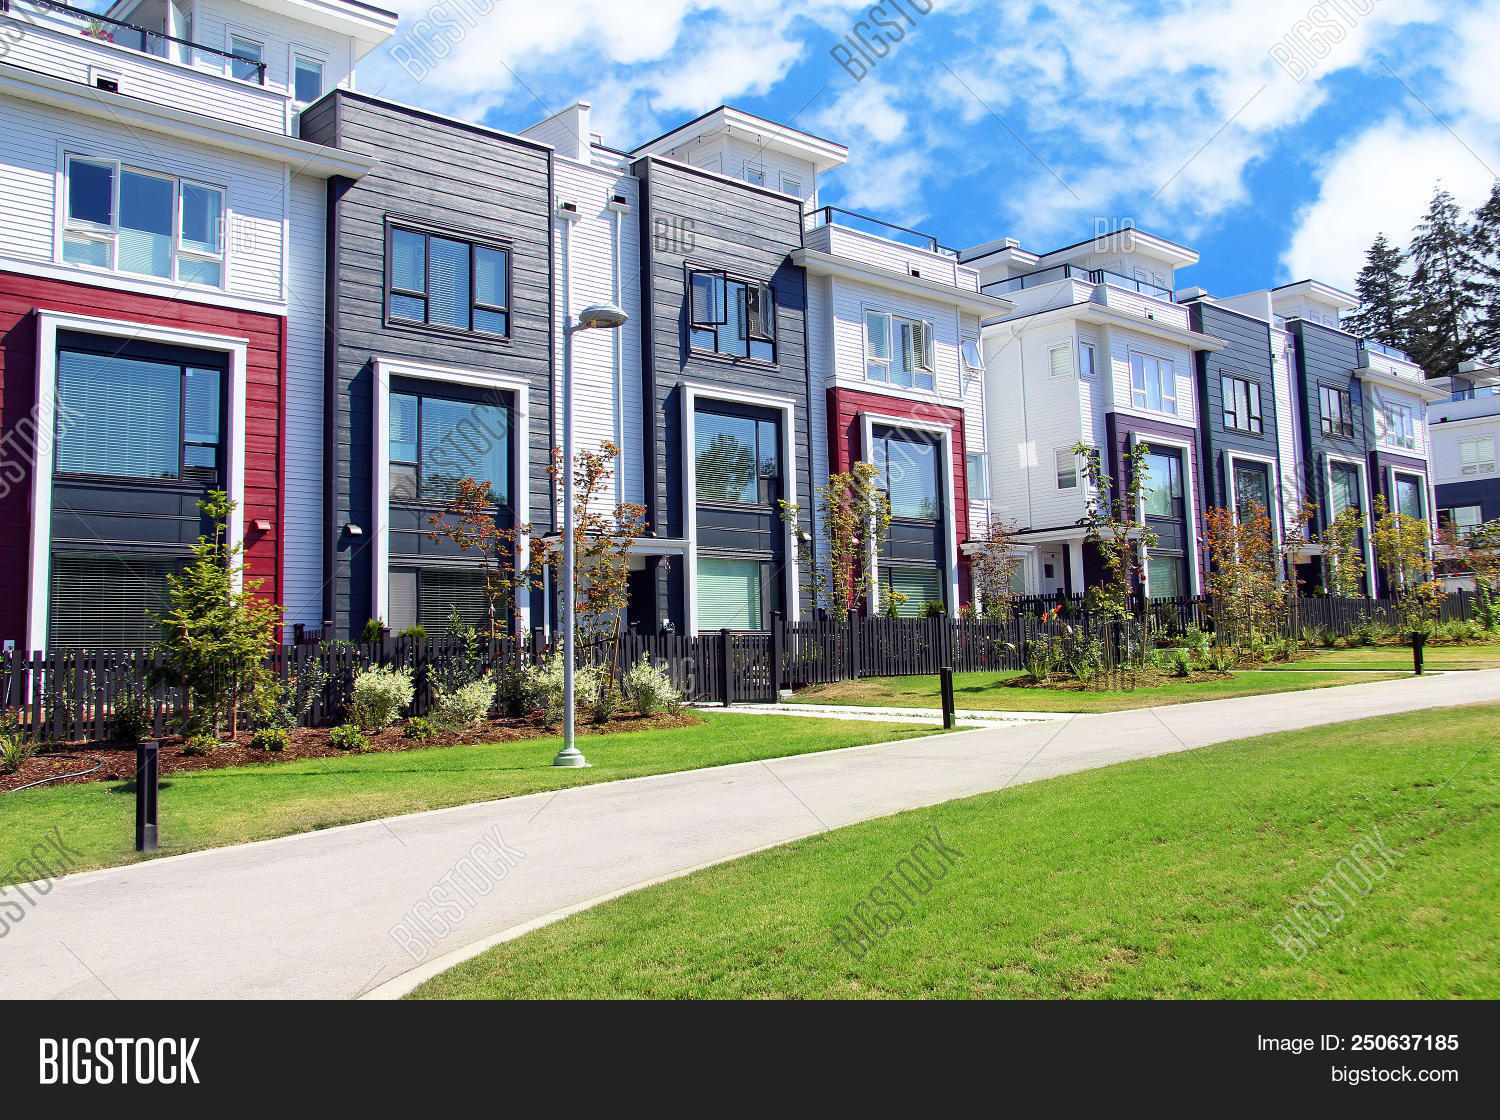 architecture,attached,brand new,building,canada,classic,complex,contemporary,development,dwelling,entrance,estate,exterior,facade,flowers,front,garden,geraniums,grass,home,house,landscape,lawn,modern,mortgage,neighborhood,new,outdoor,outside,property,real estate,residence,residential,scene,sidewalk,street,structure,suburban,summer,town,townhomes,townhouses,tree,two story,urban